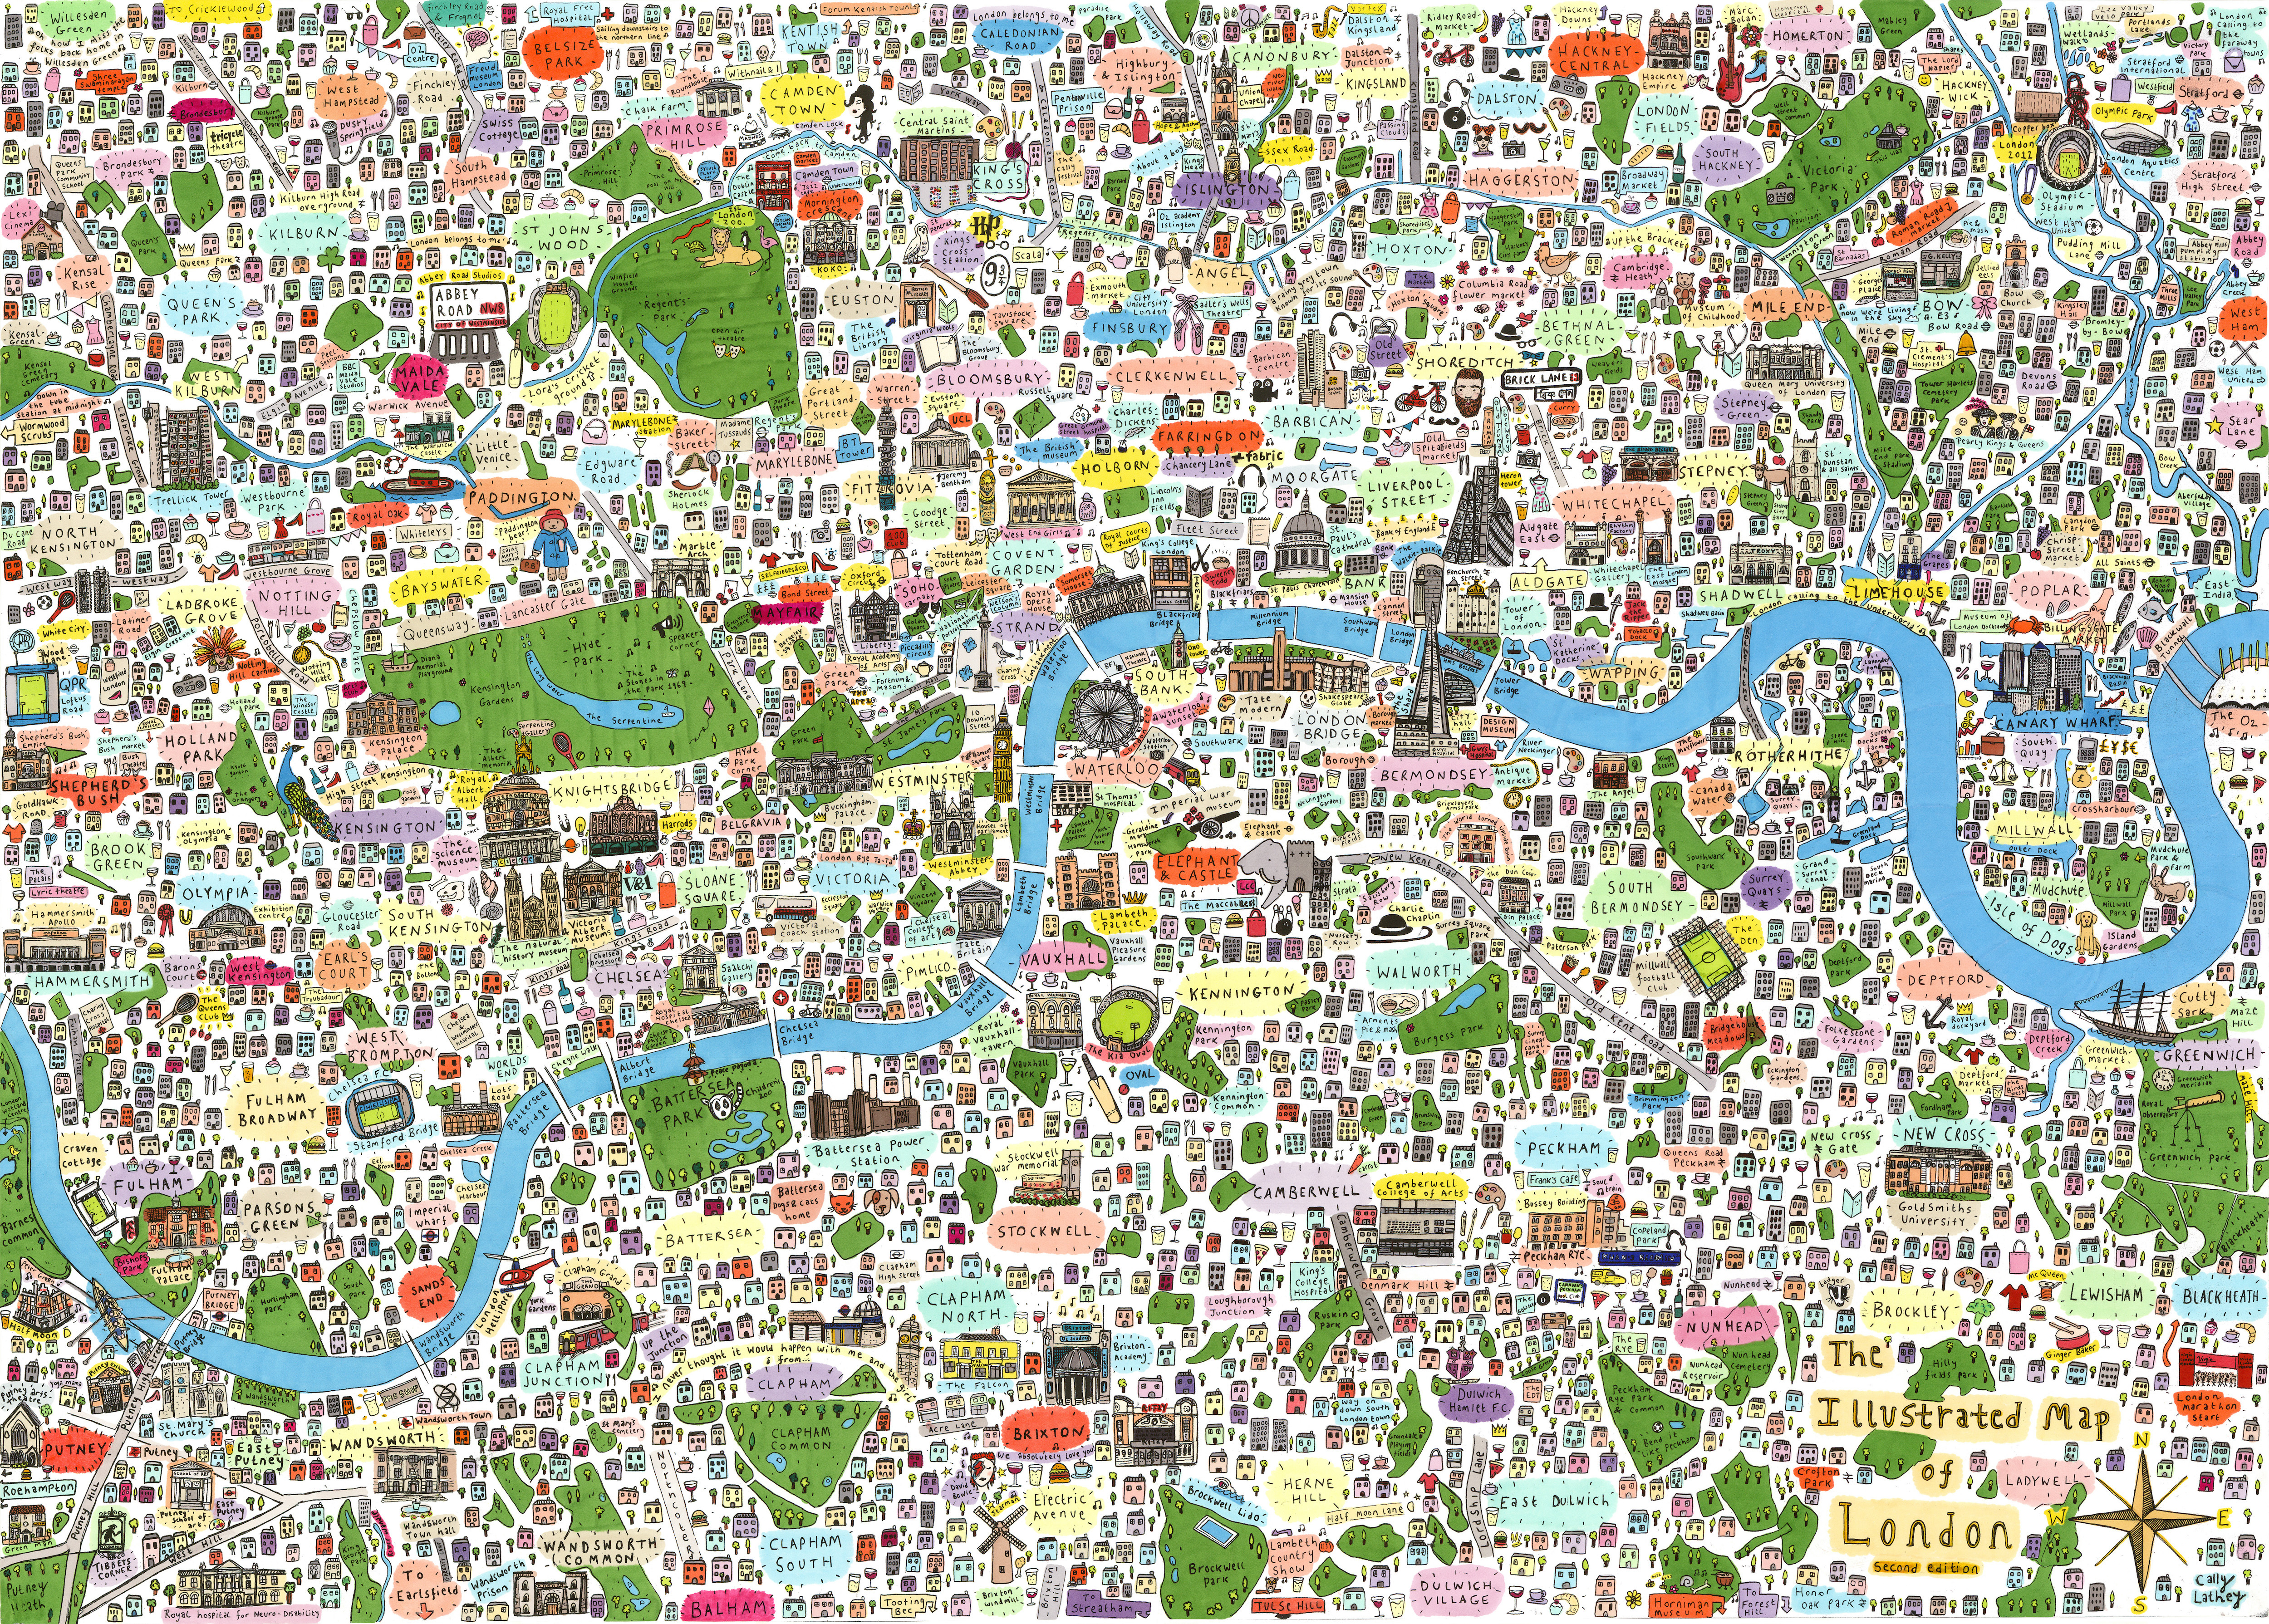 Maps Of London Spot Your Part Of Town On This Map Of London | Londonist Maps Of London